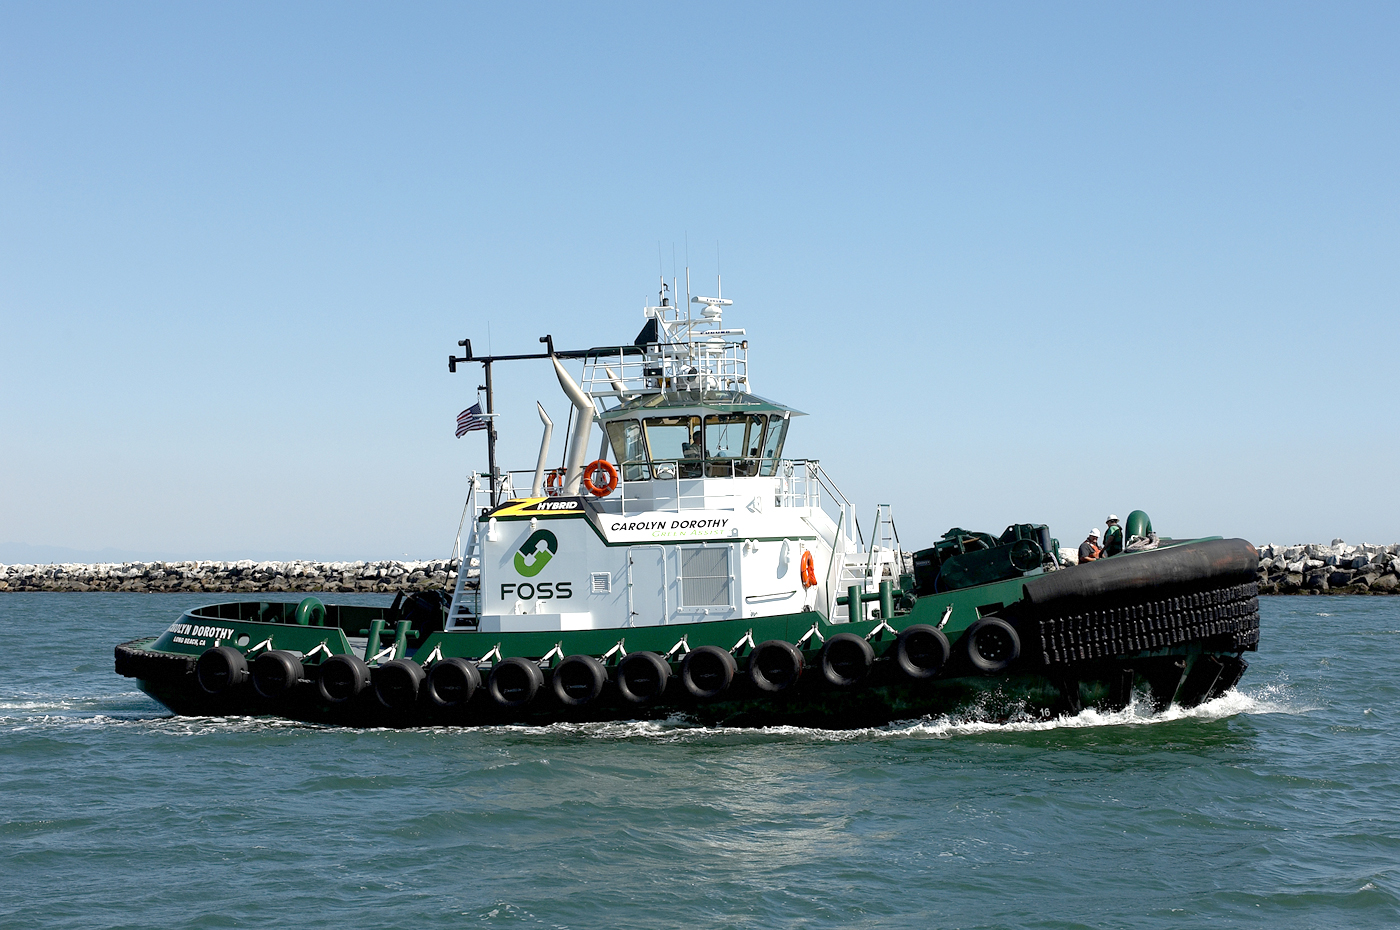 Seattle Djc Com Local Business News And Data Machinery Foss Maritime S Hybrid Tugboat To Get